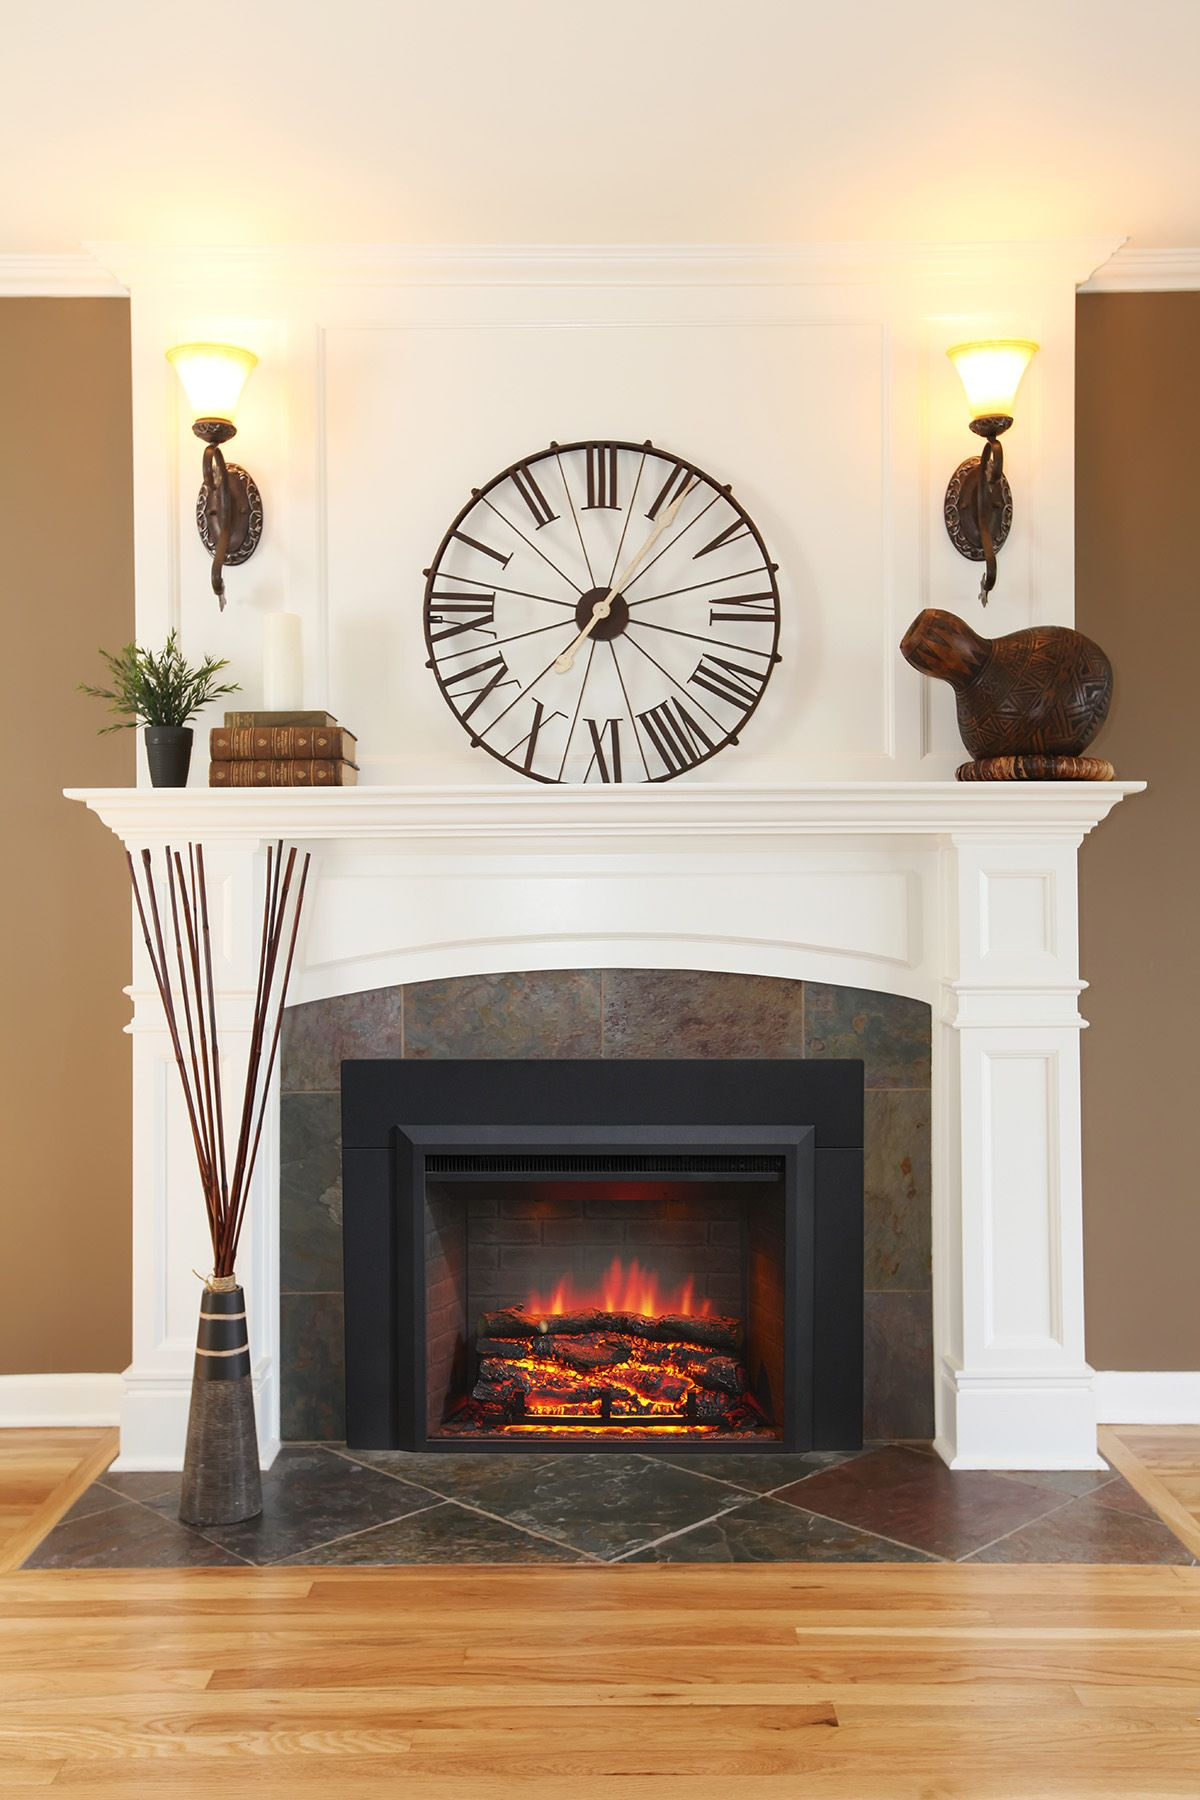 Swell An Electric Fireplace Insert Convert Your Old Wood Burning Download Free Architecture Designs Salvmadebymaigaardcom